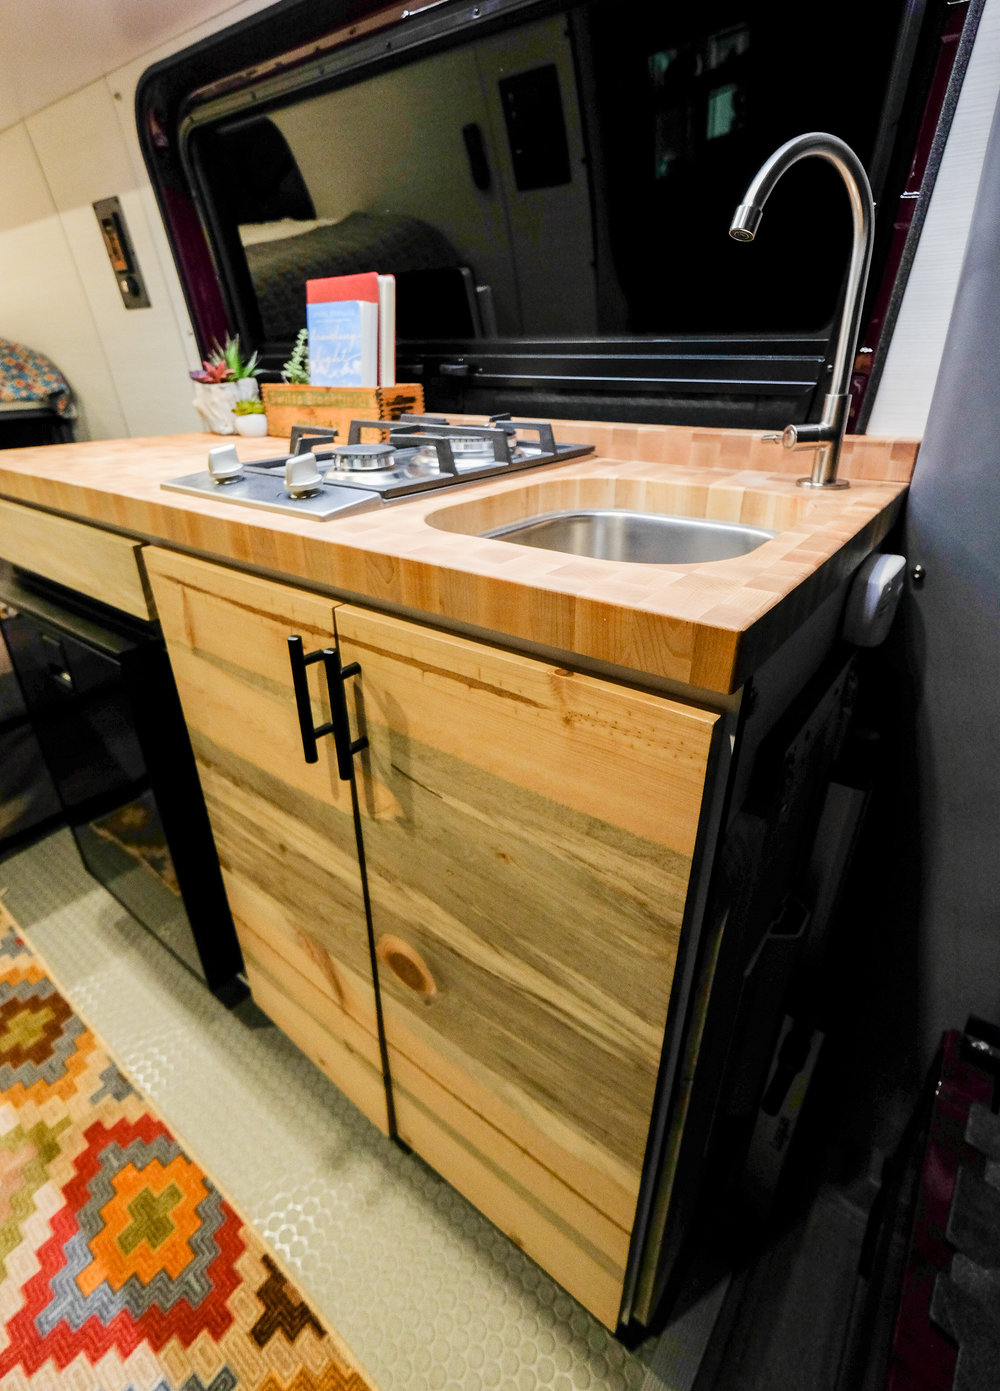 Maroon Bells' kitchenette includes an  Isotherm Cruise 85 Elegance  refrigerator, a double burner cooktop, and a unique zebrawood end grain butcher block countertop.